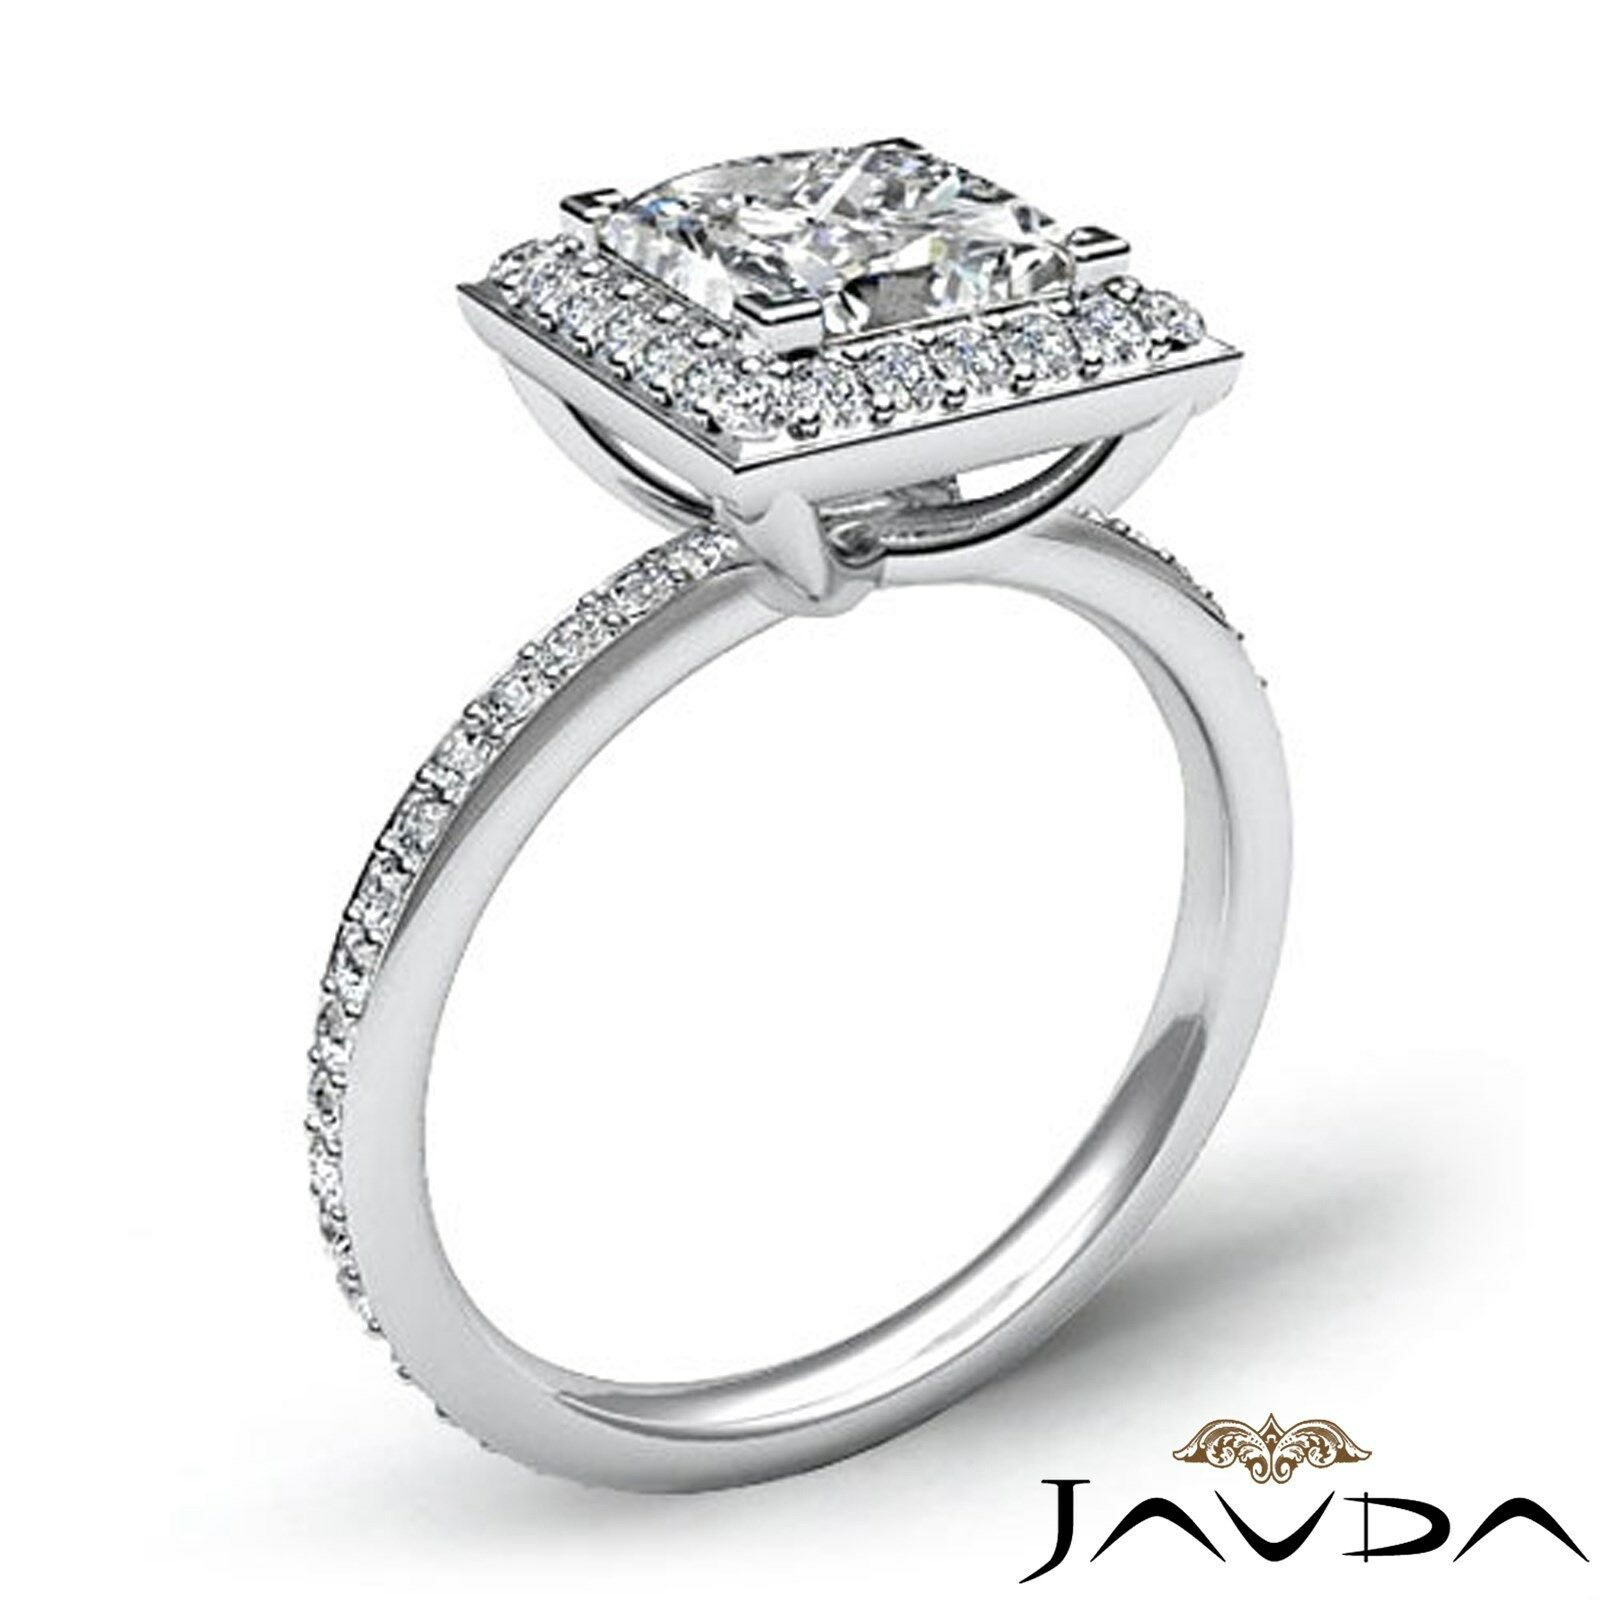 Halo Pave Set Princess Cut Diamond Engagement Ring GIA G Color VS1 Clarity 2.5Ct 1